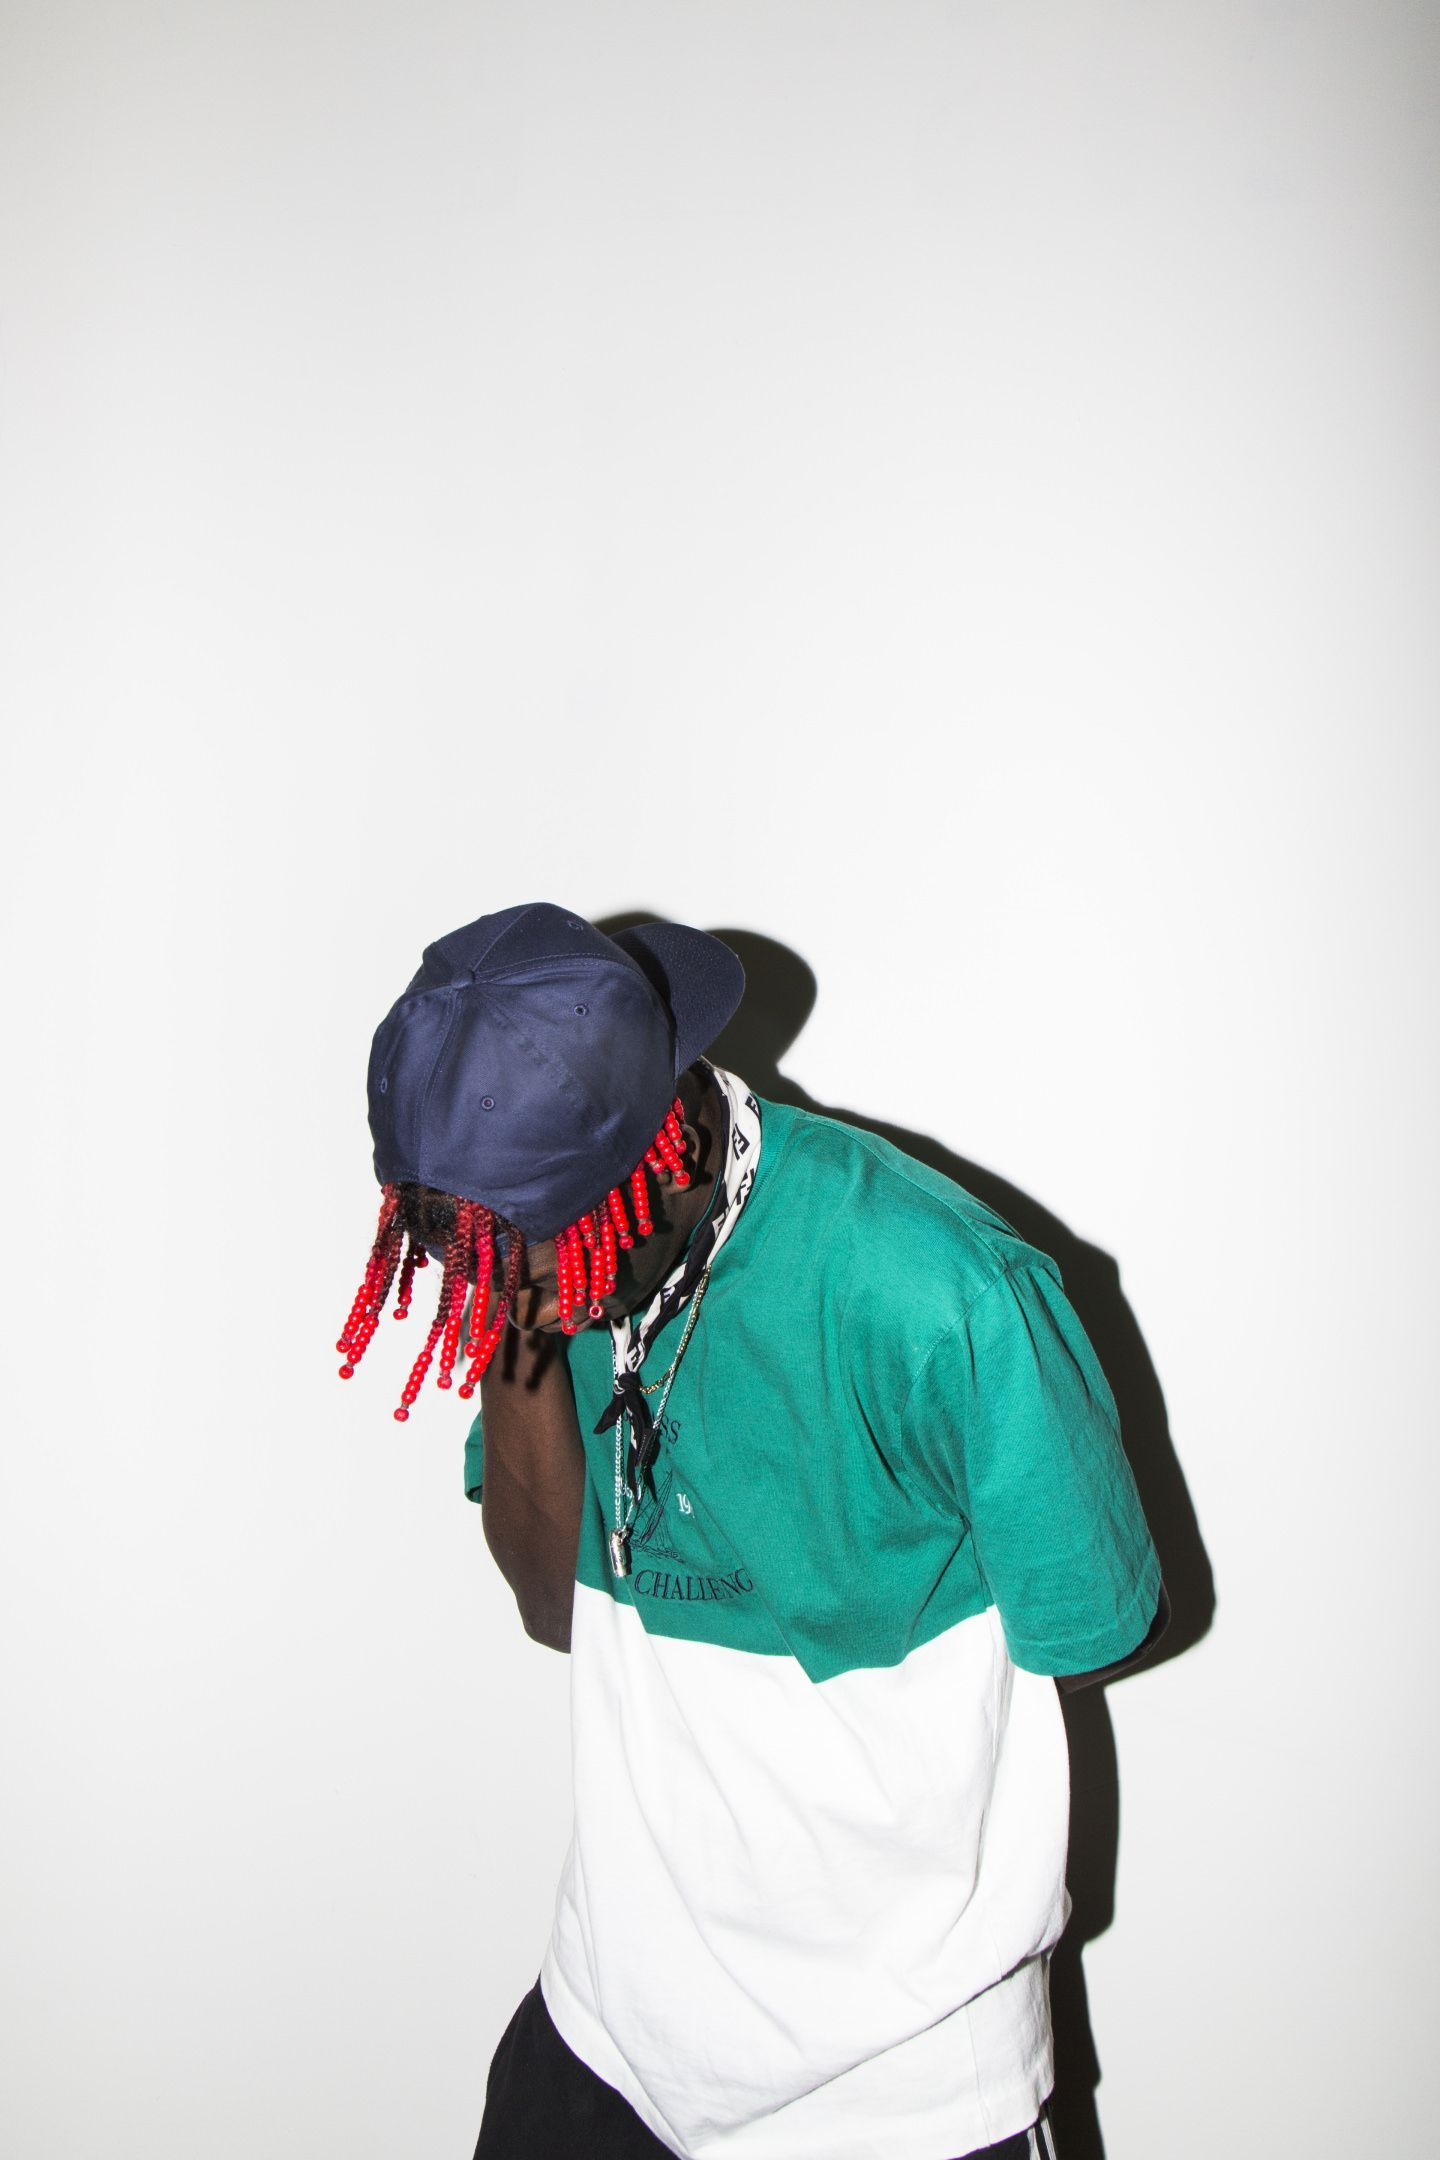 1440x2160 The Things I Carry: Lil Yachty | Lil yachty, Rapper and Wallpaper